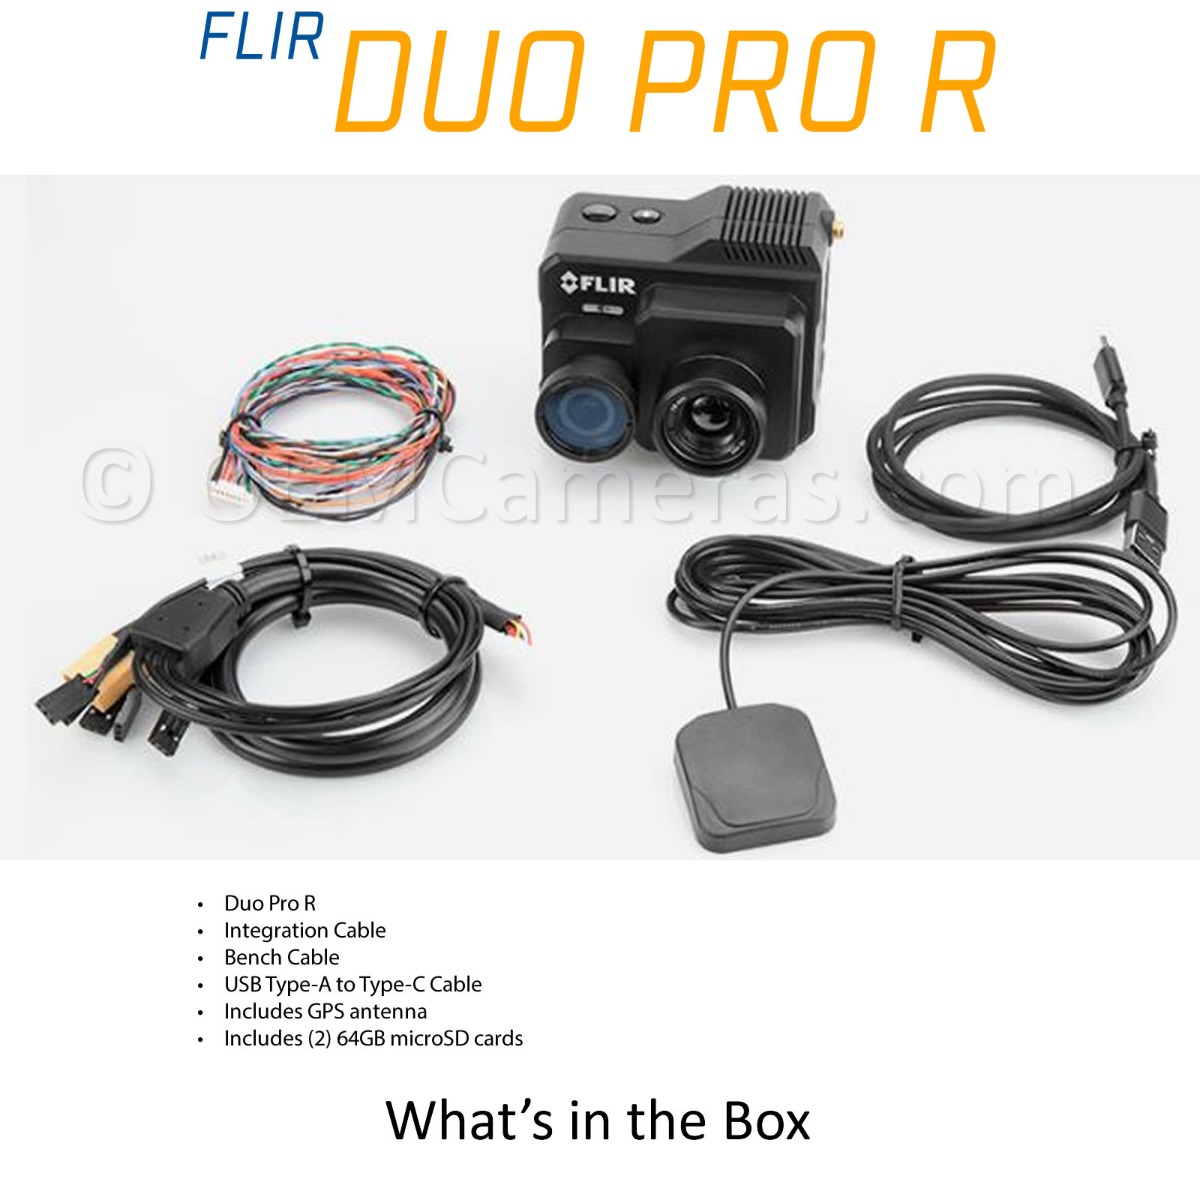 FLIR DUO PRO R  - What's in the Box